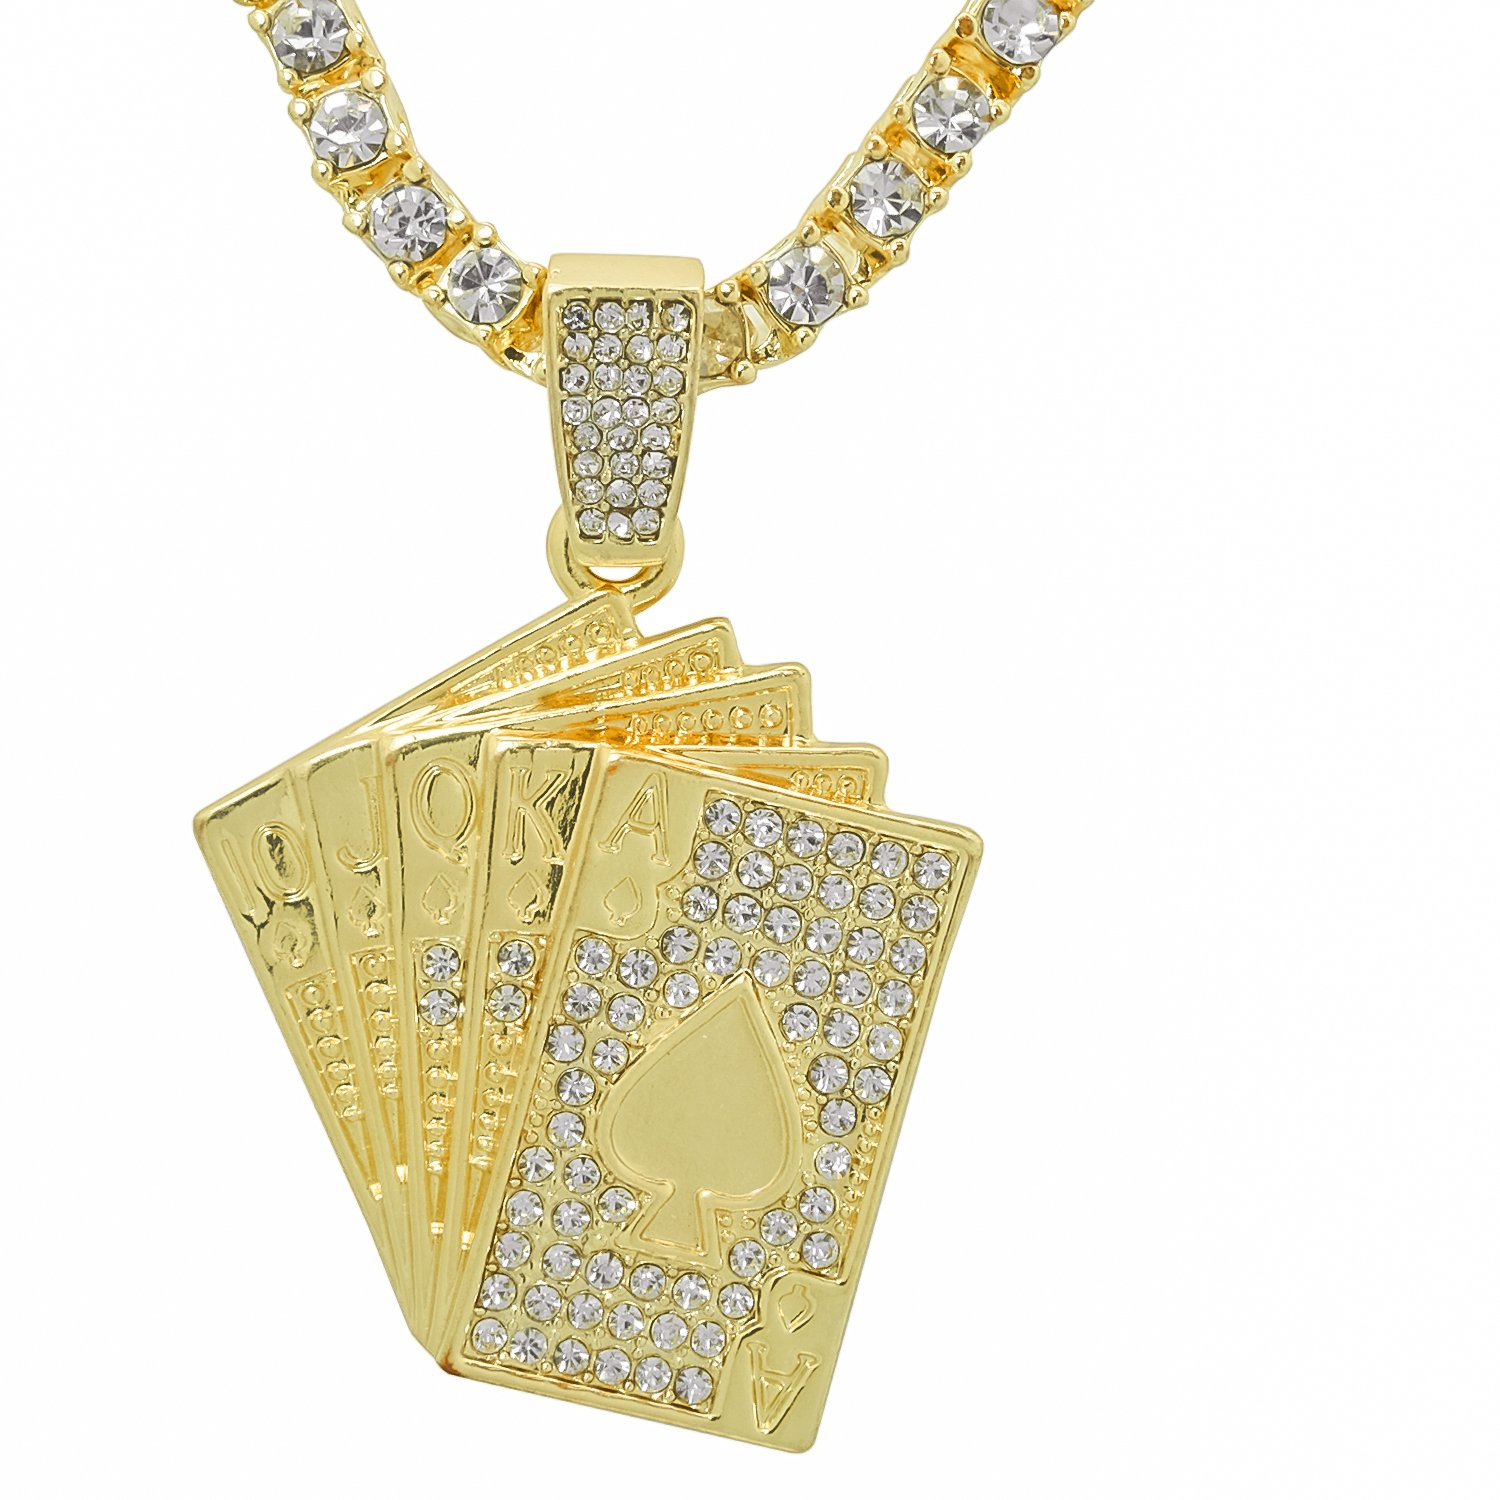 Gold-Tone Iced Out Hip Hop Bling Poker Spade Royal Flush Pendant With 24 Tennis Chain and 24 Rope Chain